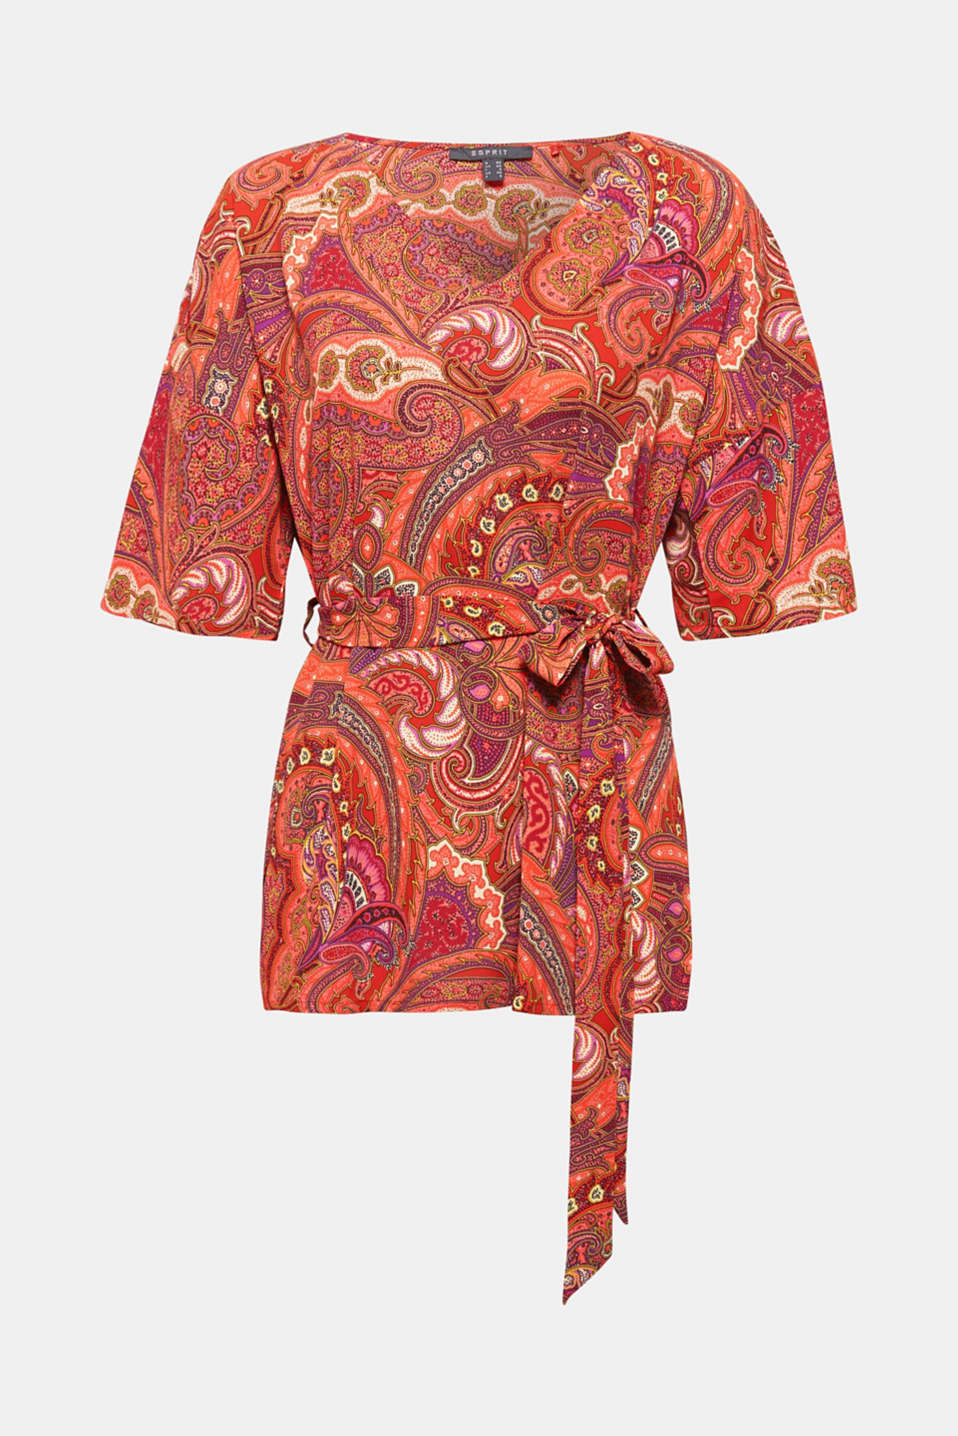 This elegant tunic blouse with a decorative paisley print, a large V-neckline and ties is an exceptionally eye-catching piece!